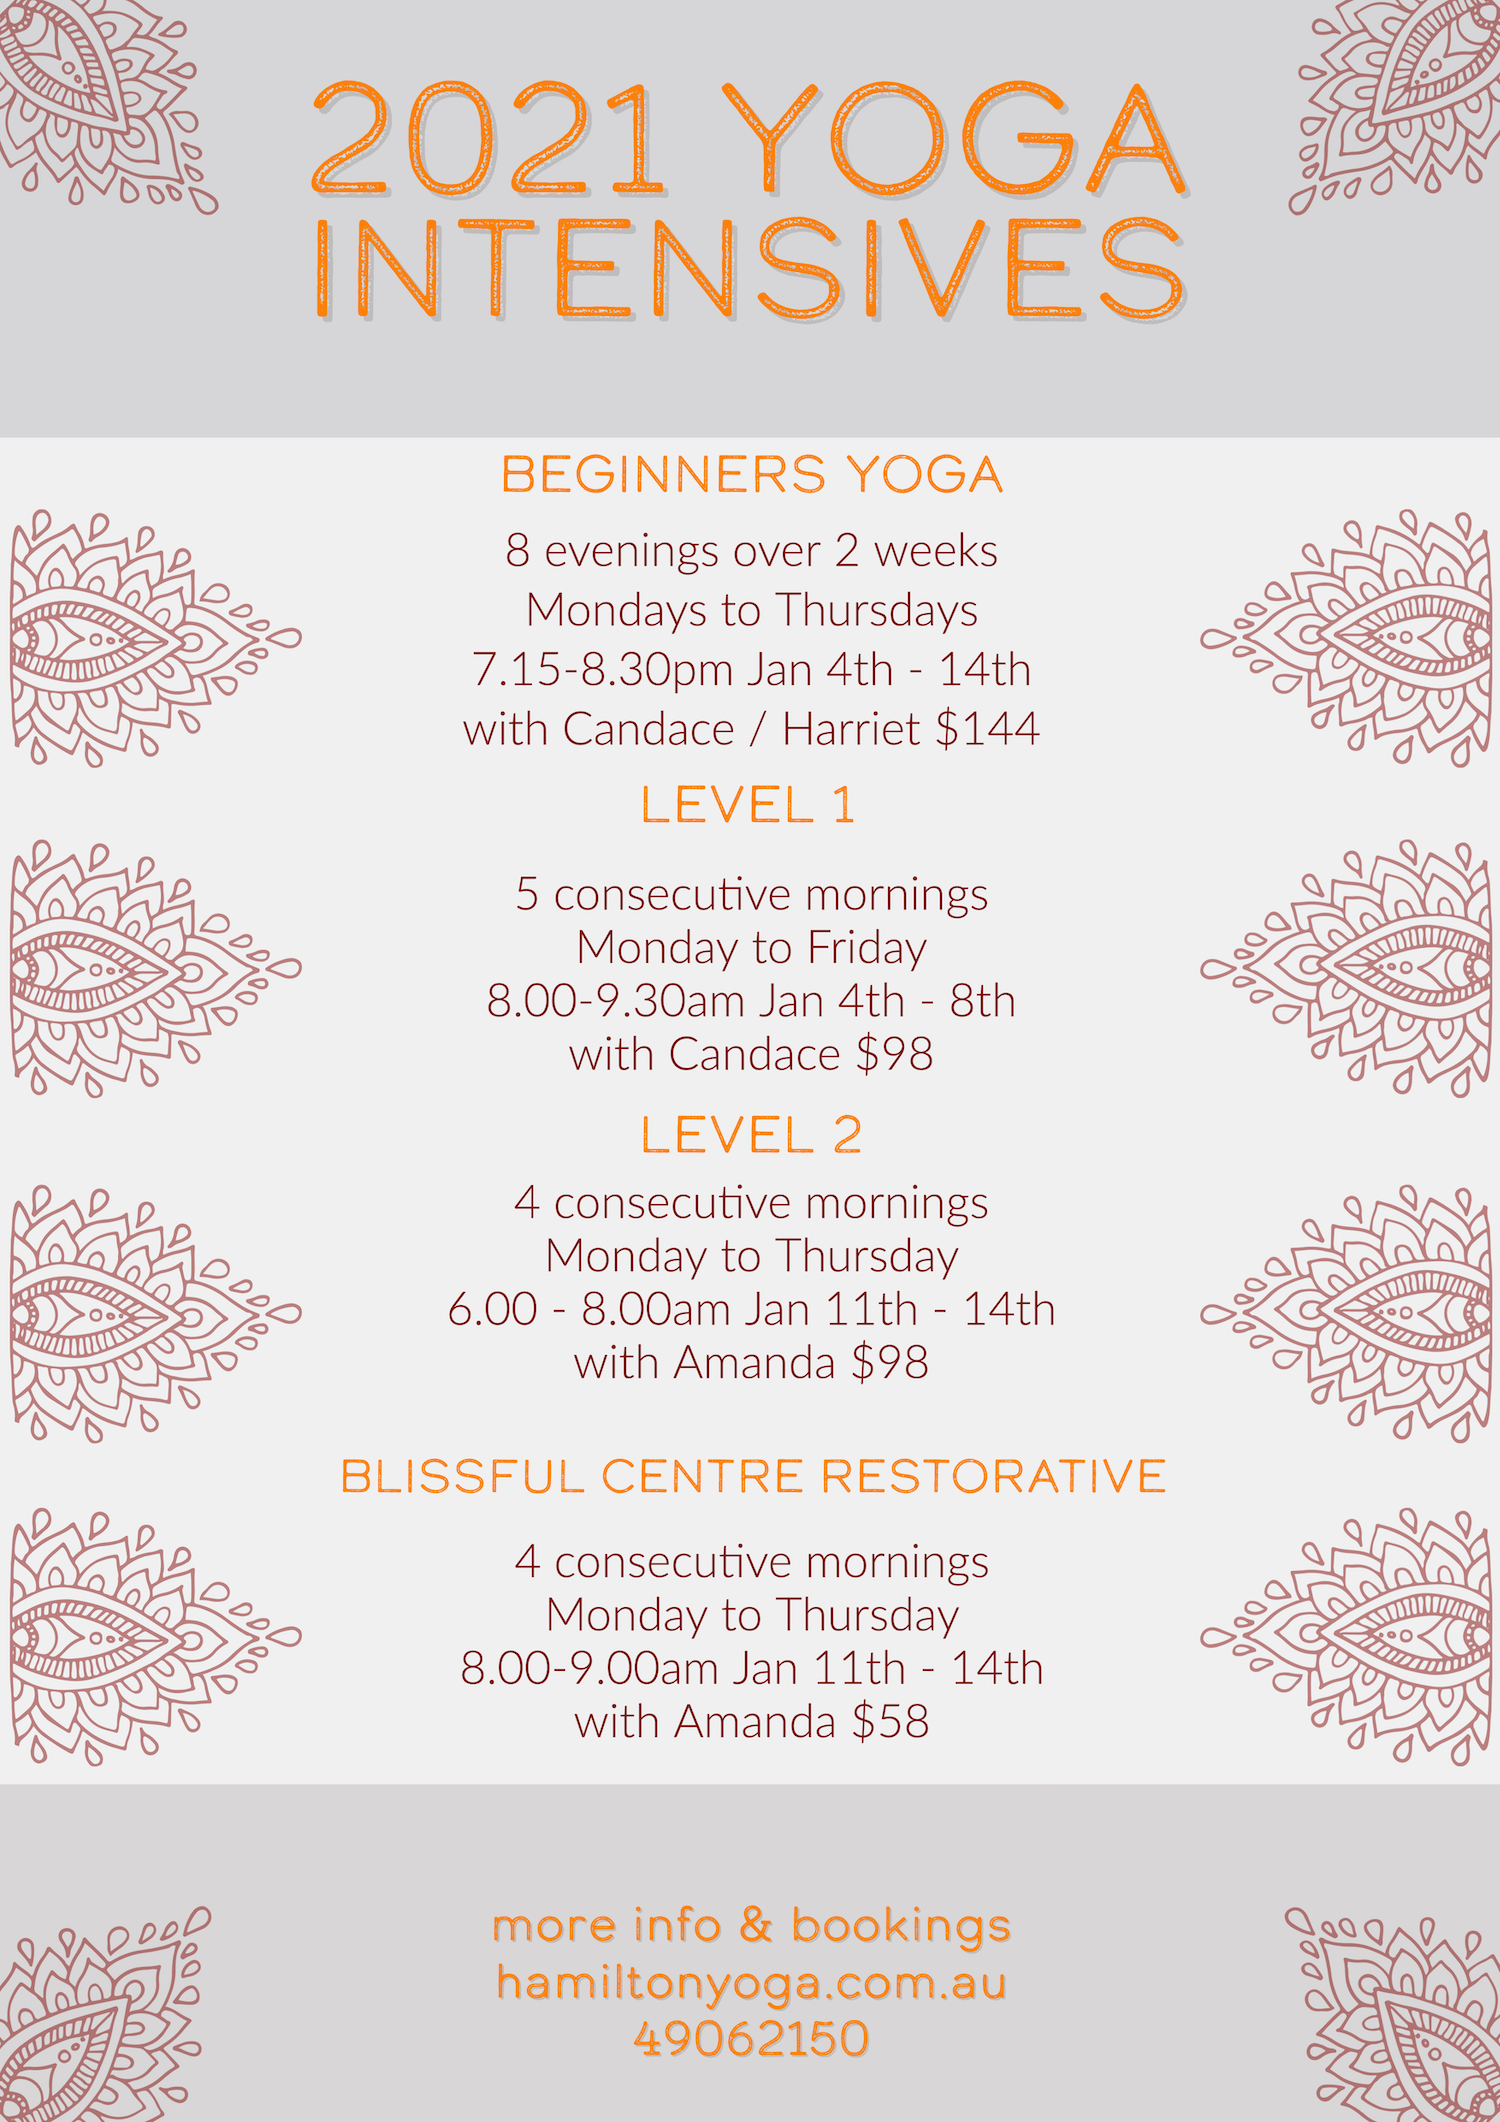 Summer Intensives schedule at Hamilton Yoga in Newcastle New South Wales